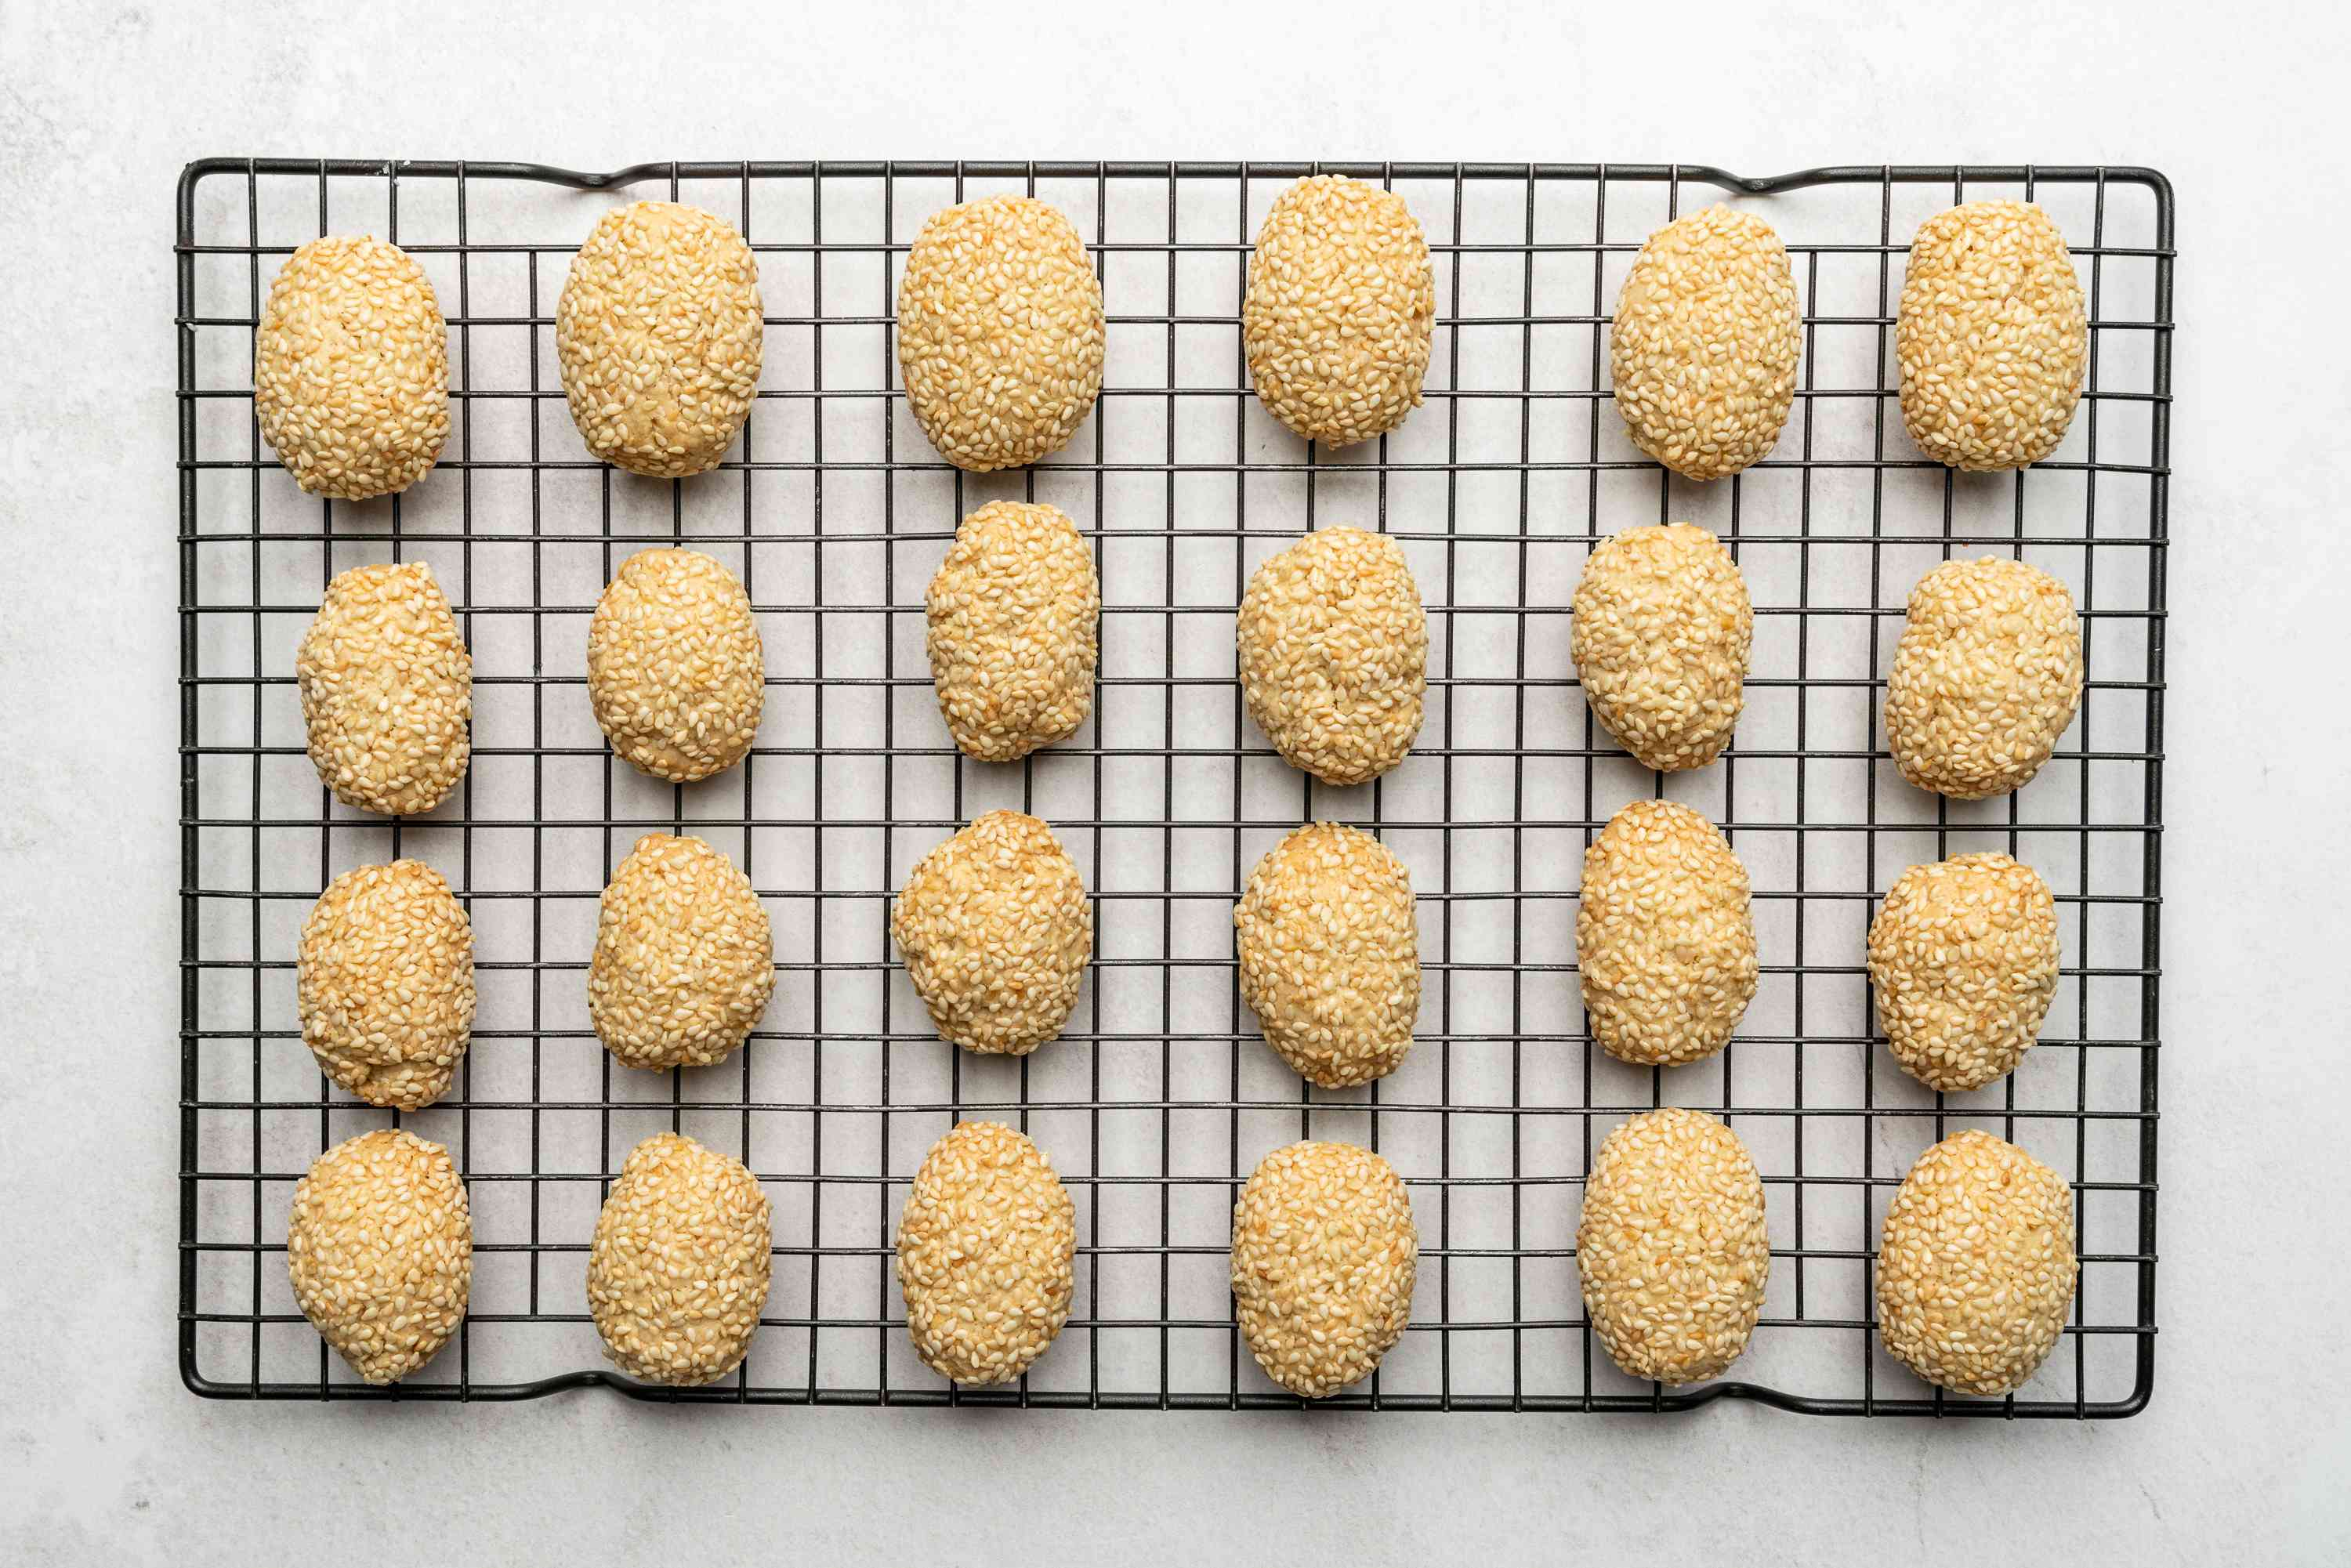 Toasted Sesame Seed Cookies on a cooling rack